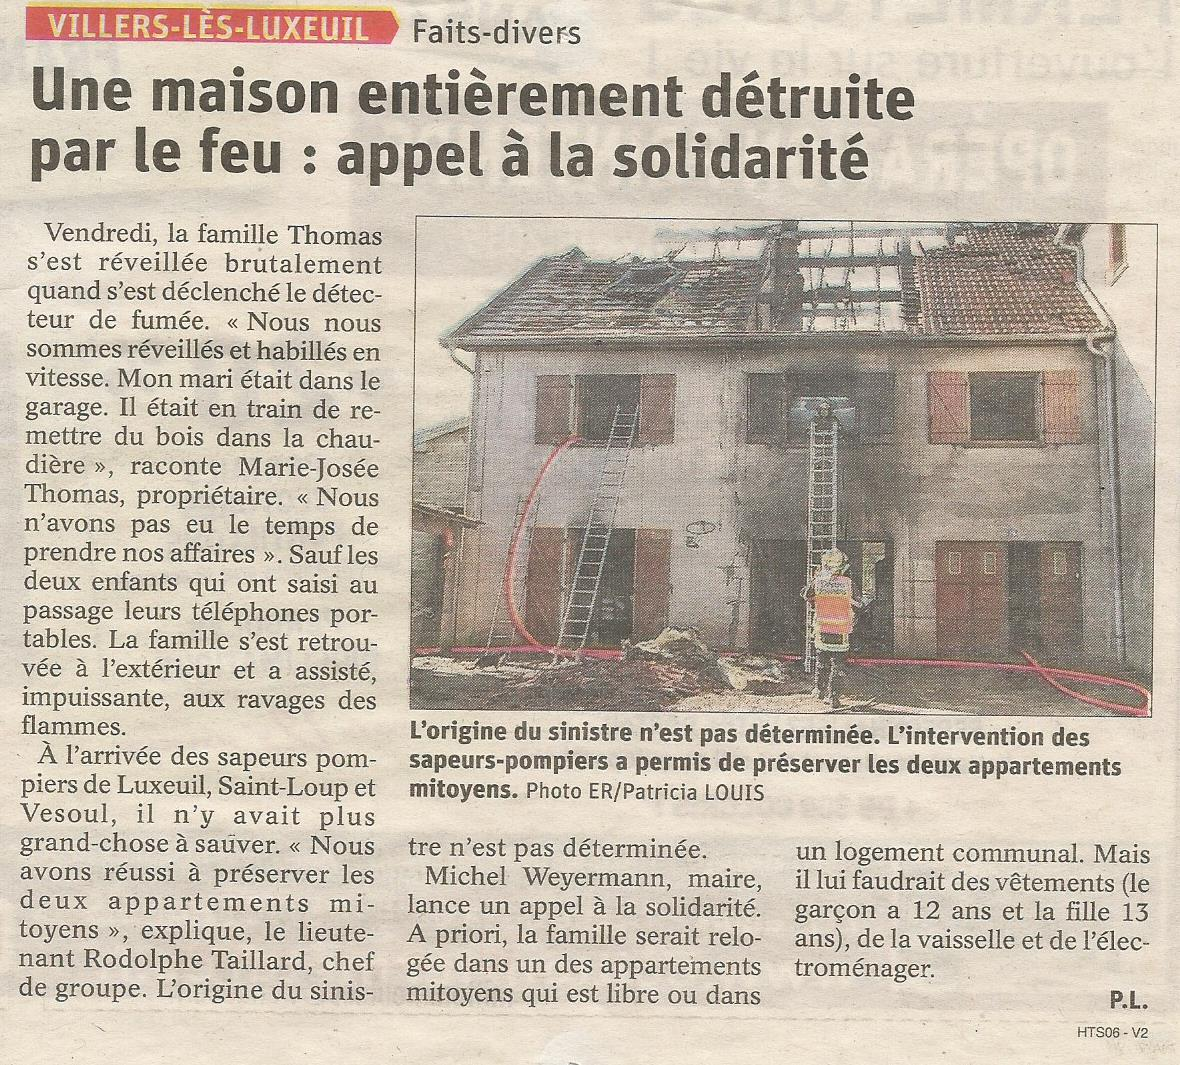 https://www.villers-les-luxeuil.com/projets/villers/files/images/2019_Mairie/Presse/Presse_2019_03_292.jpg